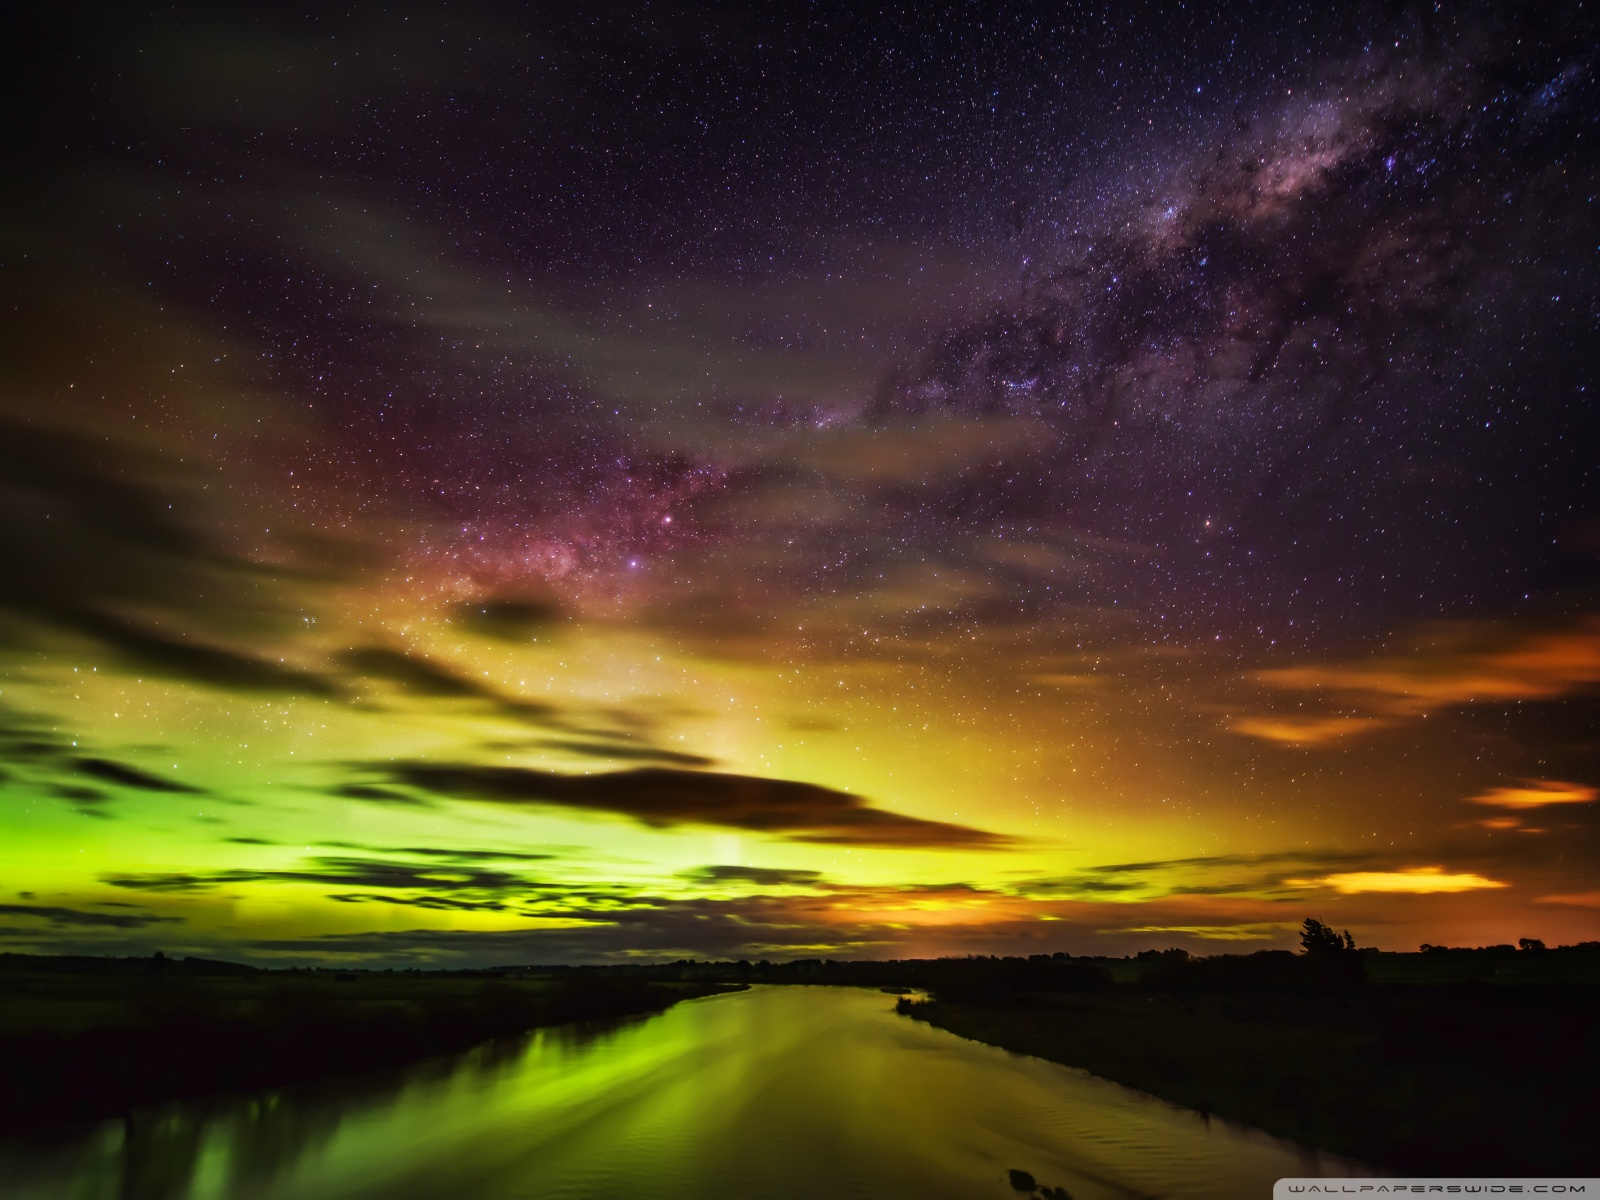 Free The Southern Lights in New Zealand phone wallpaper by tpowell423